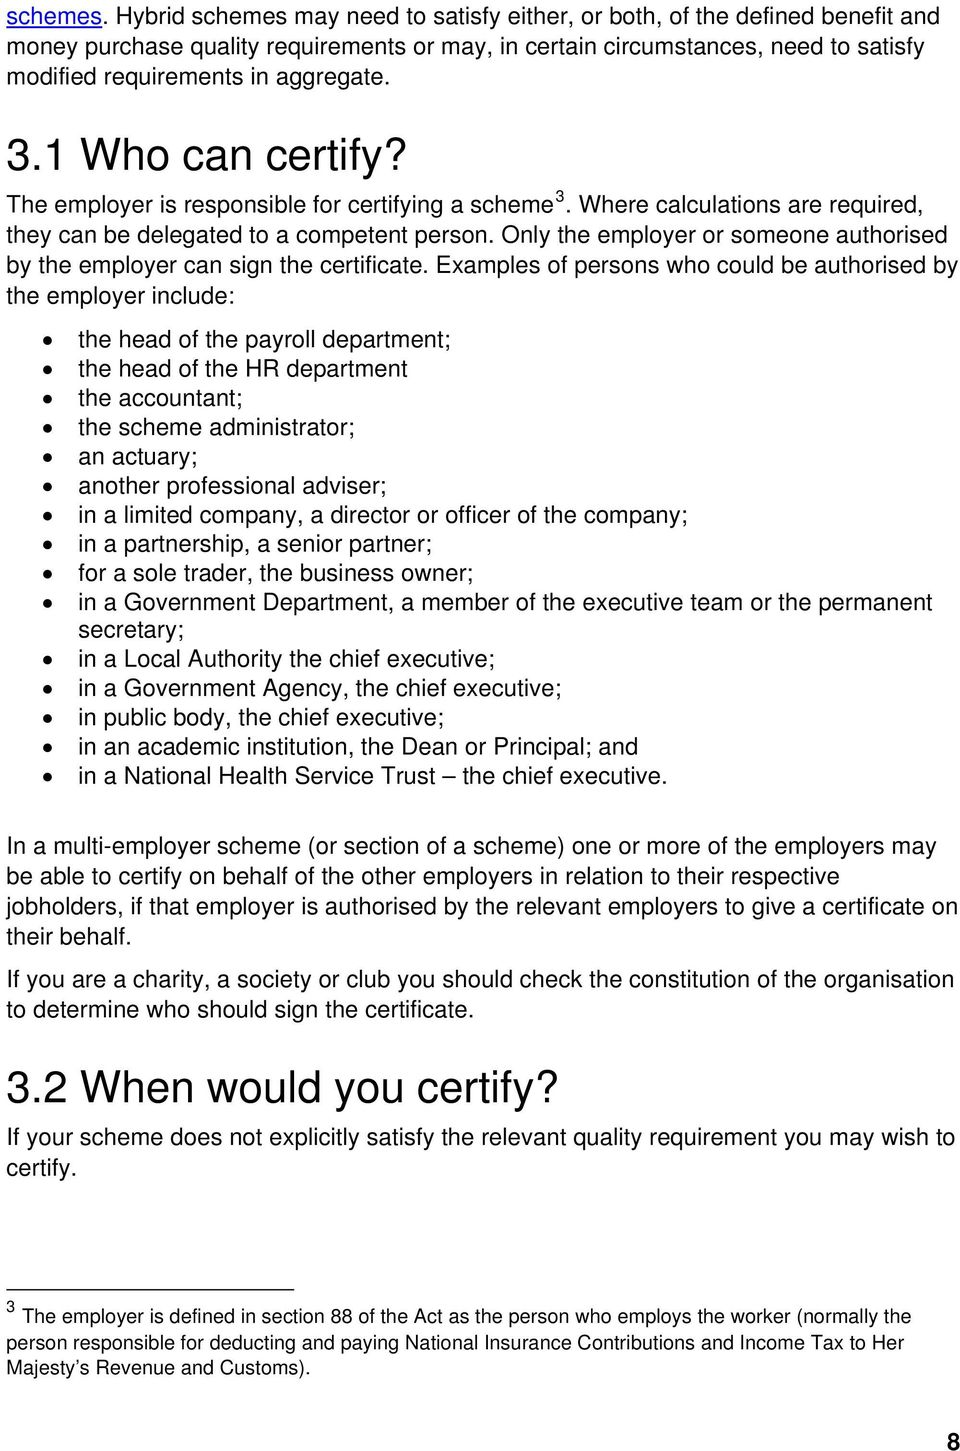 3.1 Who can certify? The employer is responsible for certifying a scheme 3. Where calculations are required, they can be delegated to a competent person.